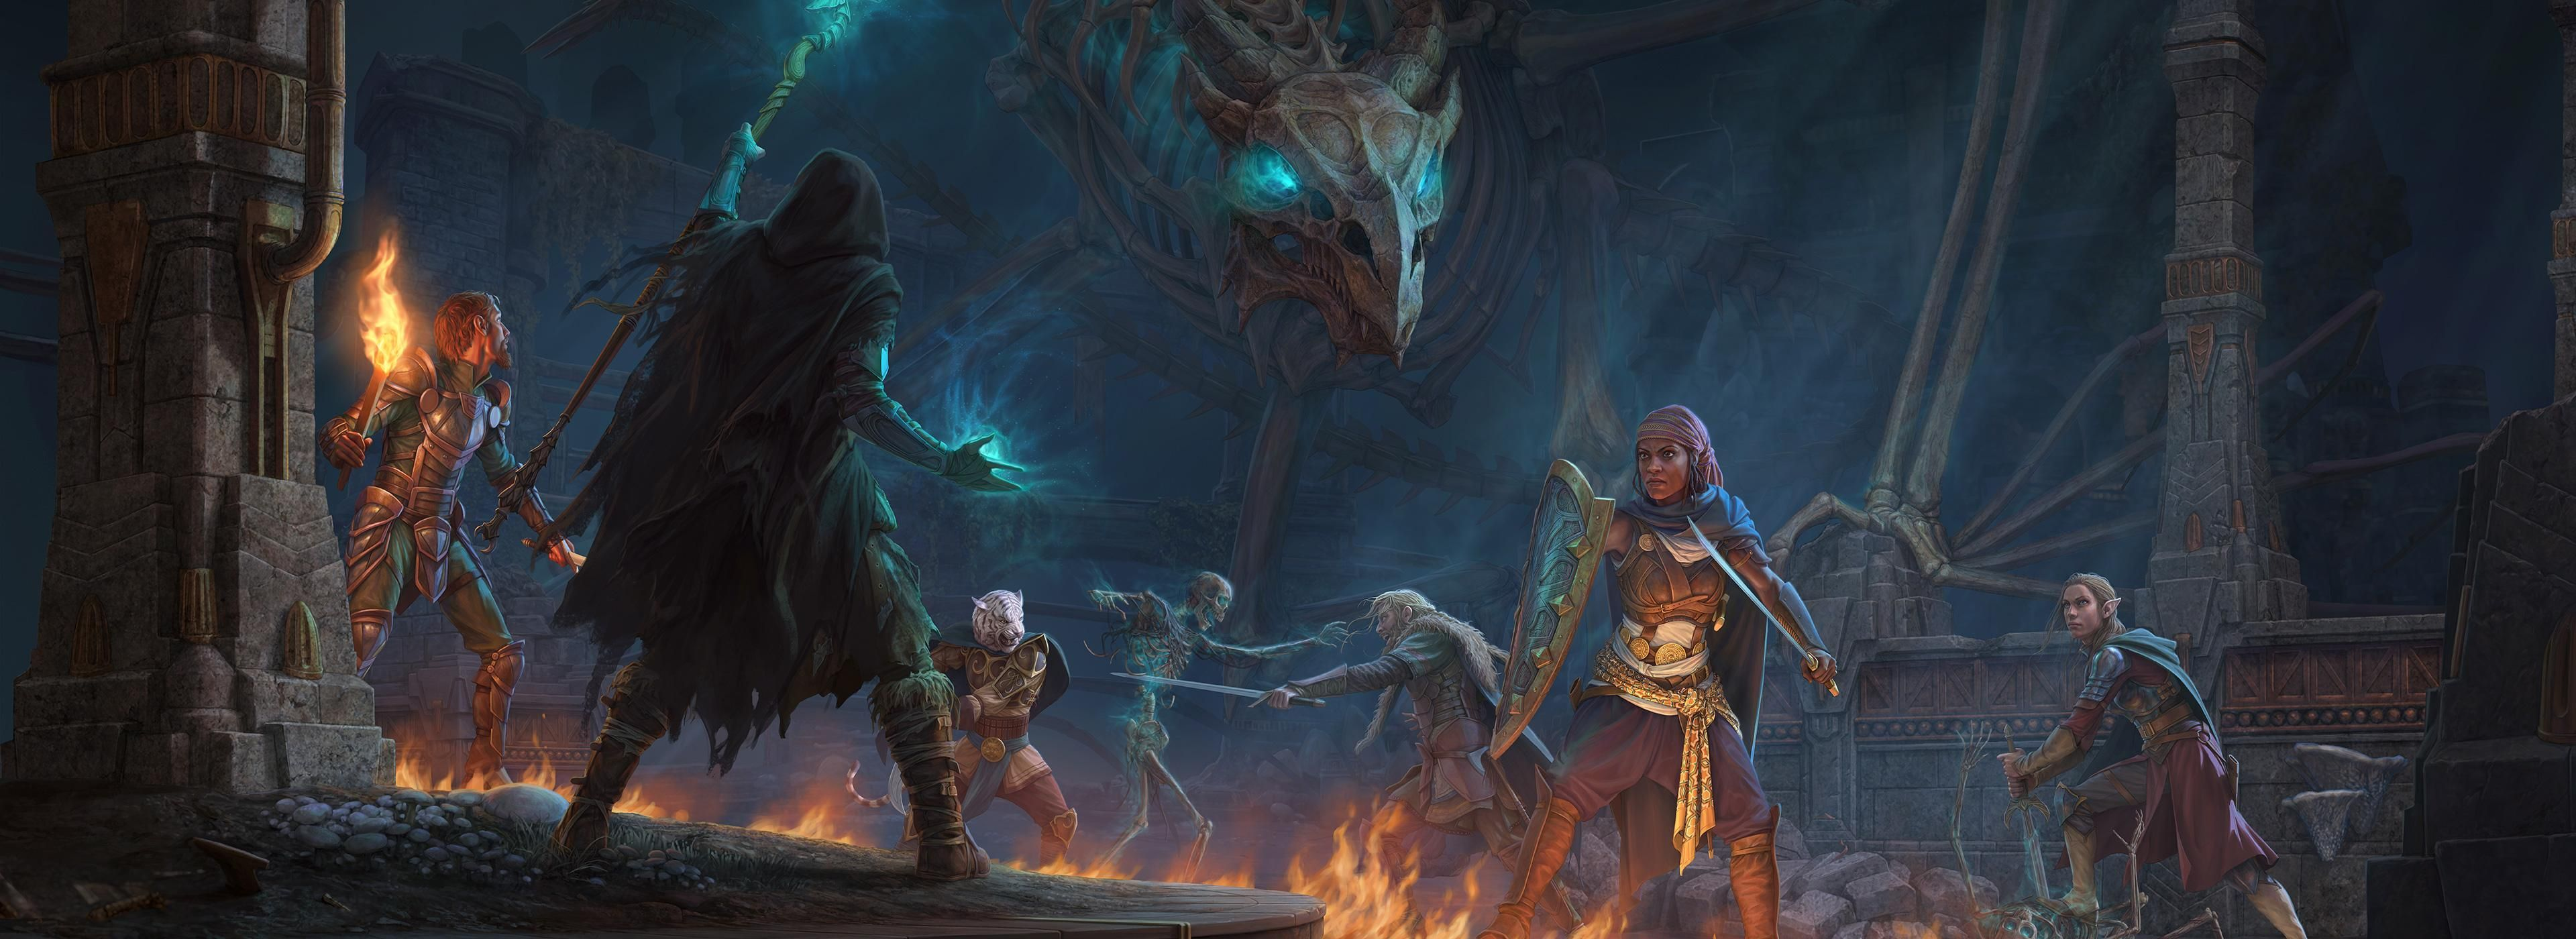 ESO Fang Lair Dungeon Guide - MMOGames com